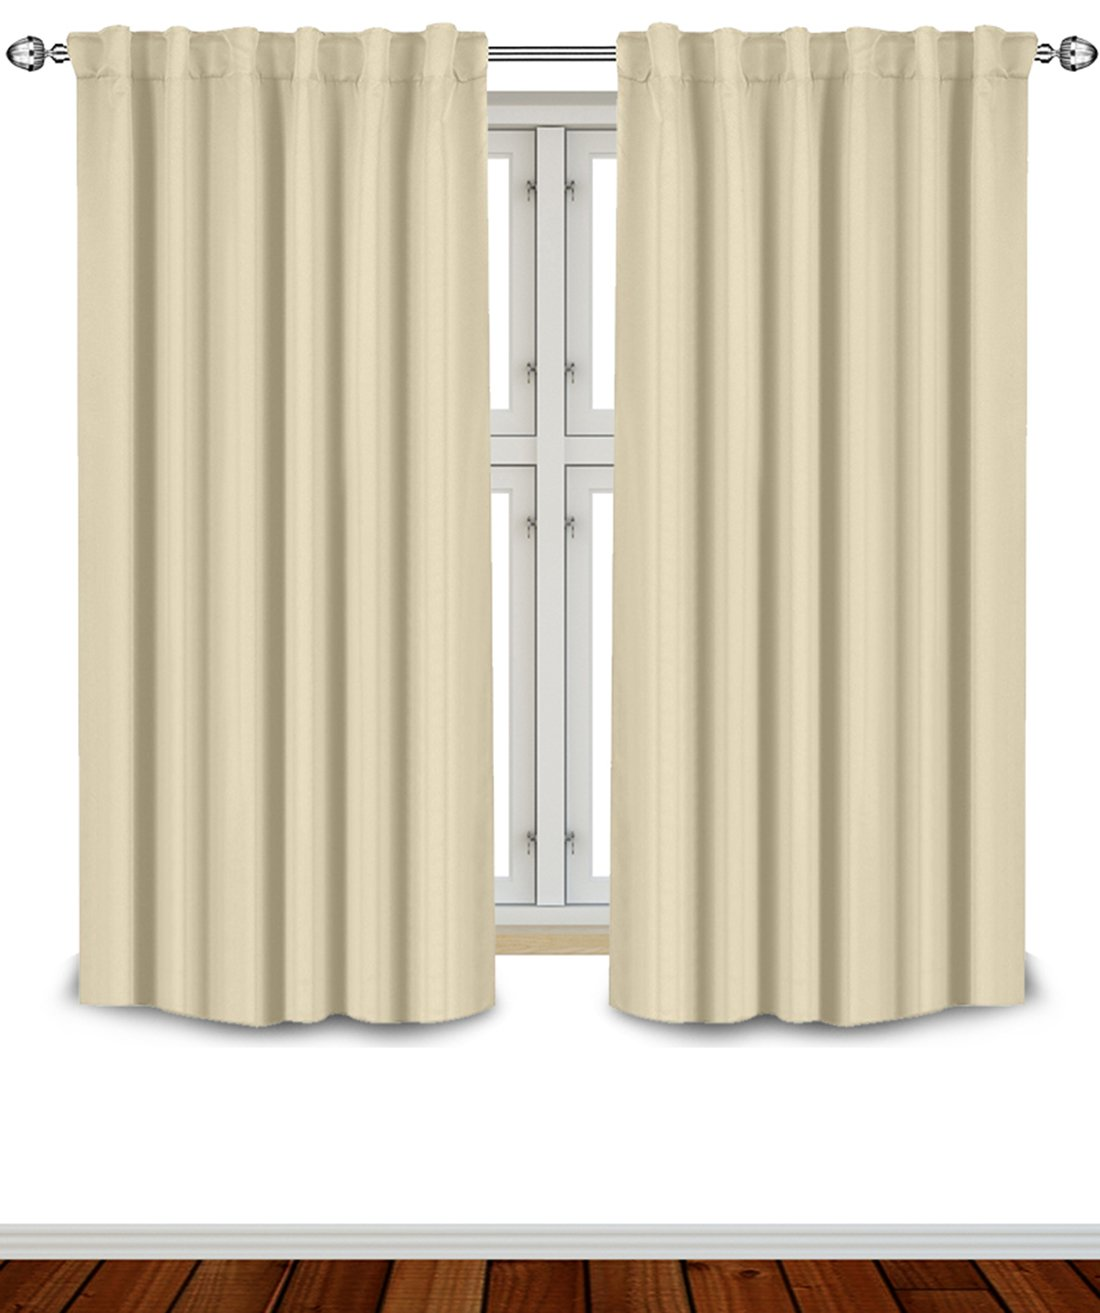 bodied full curtain luxury inch bistrothirty see curtains sea swag zoom glass delightful